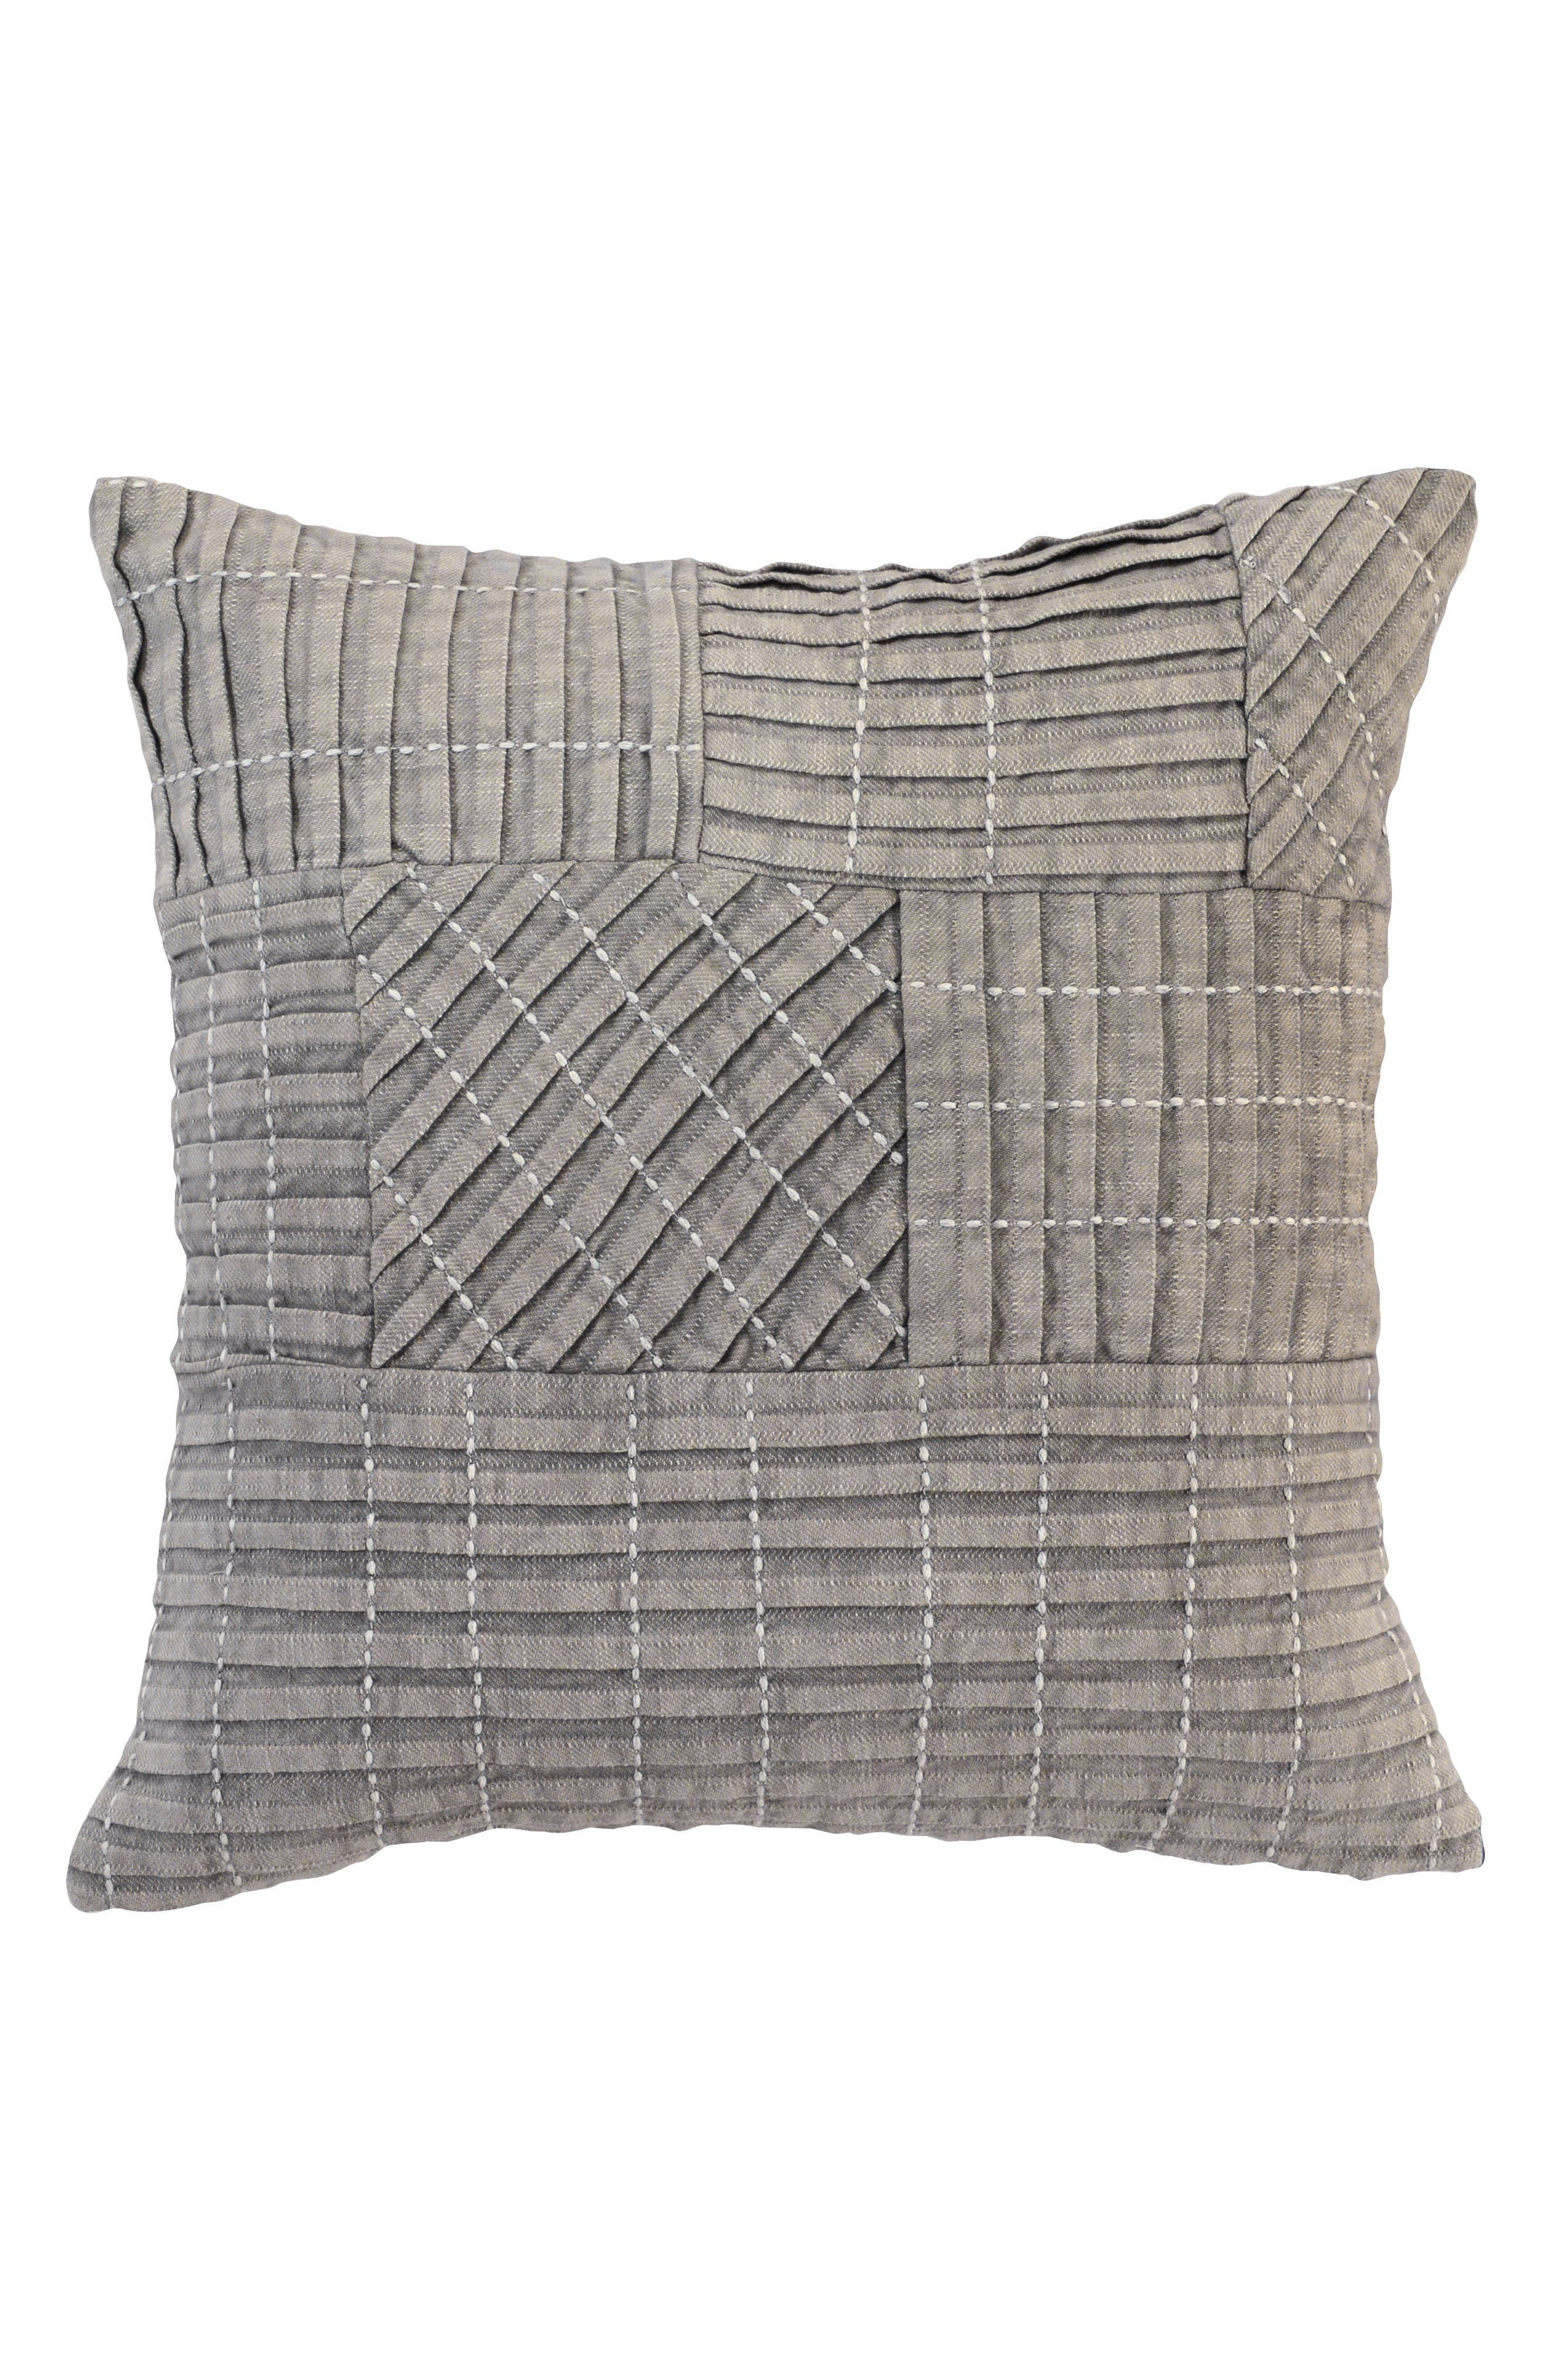 Taby Accent Pillow,                             Main thumbnail 1, color,                             Grey